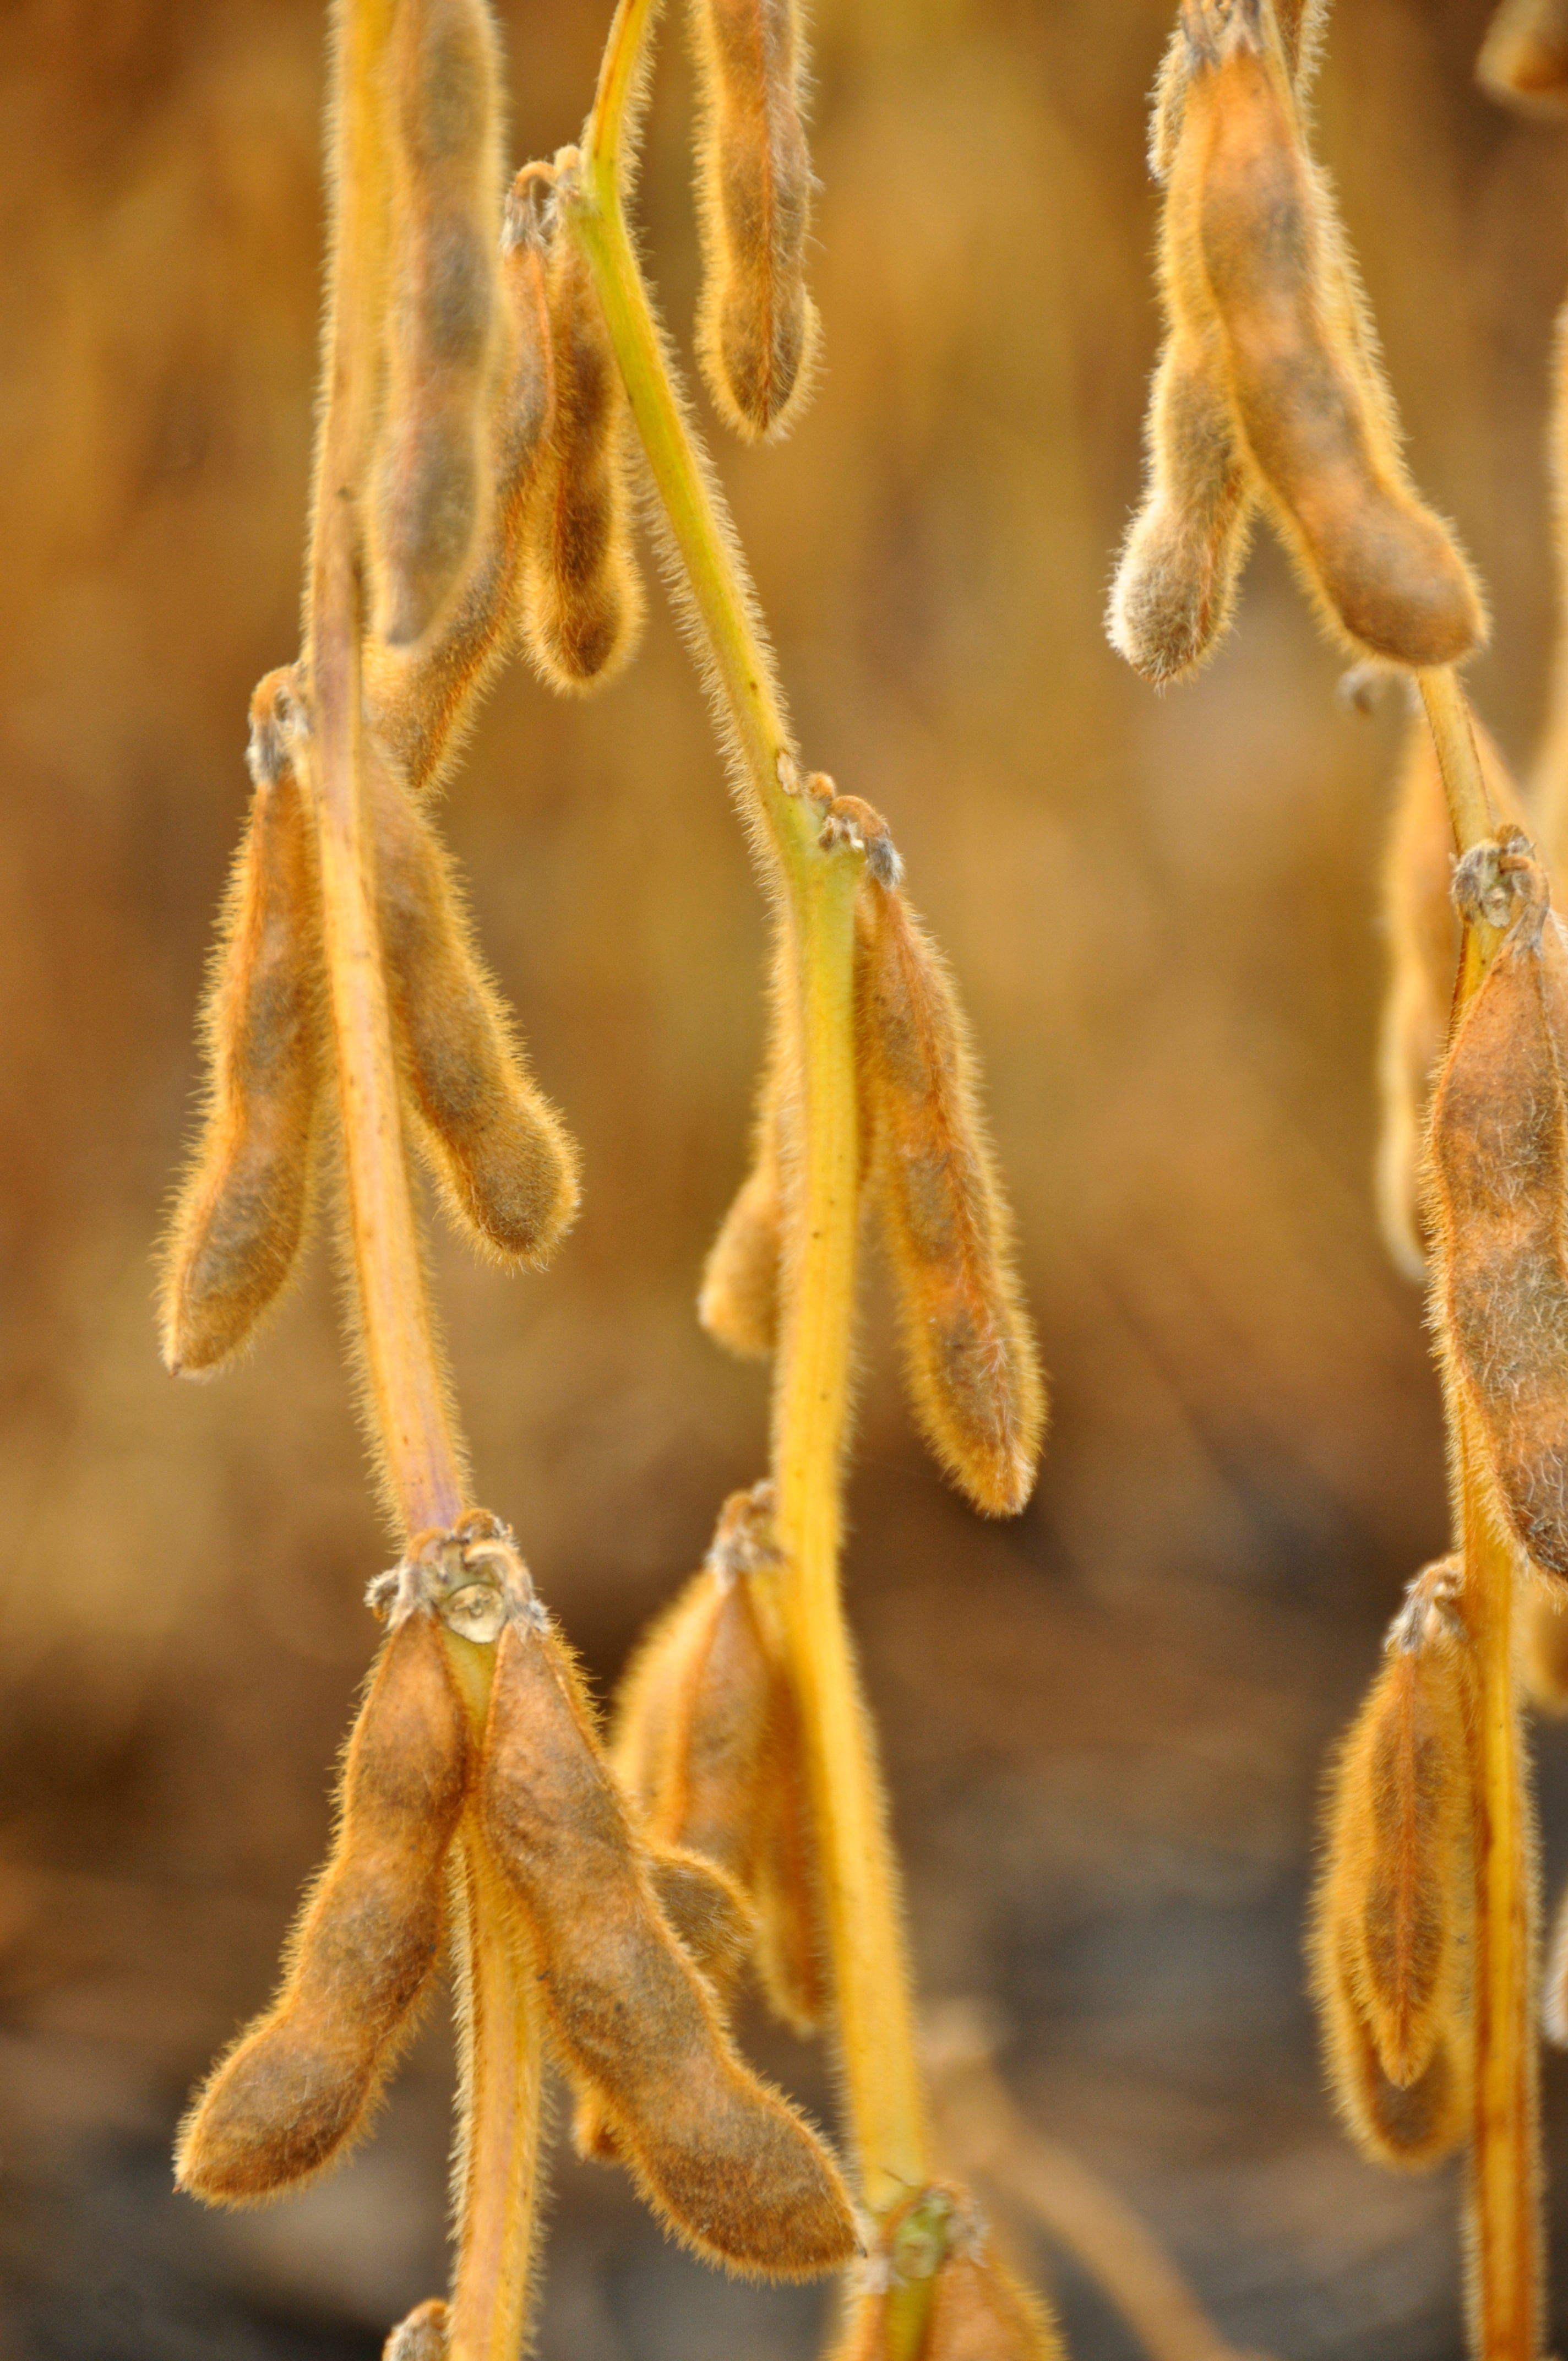 Example of Soybeans in the Plant Maturity Stage